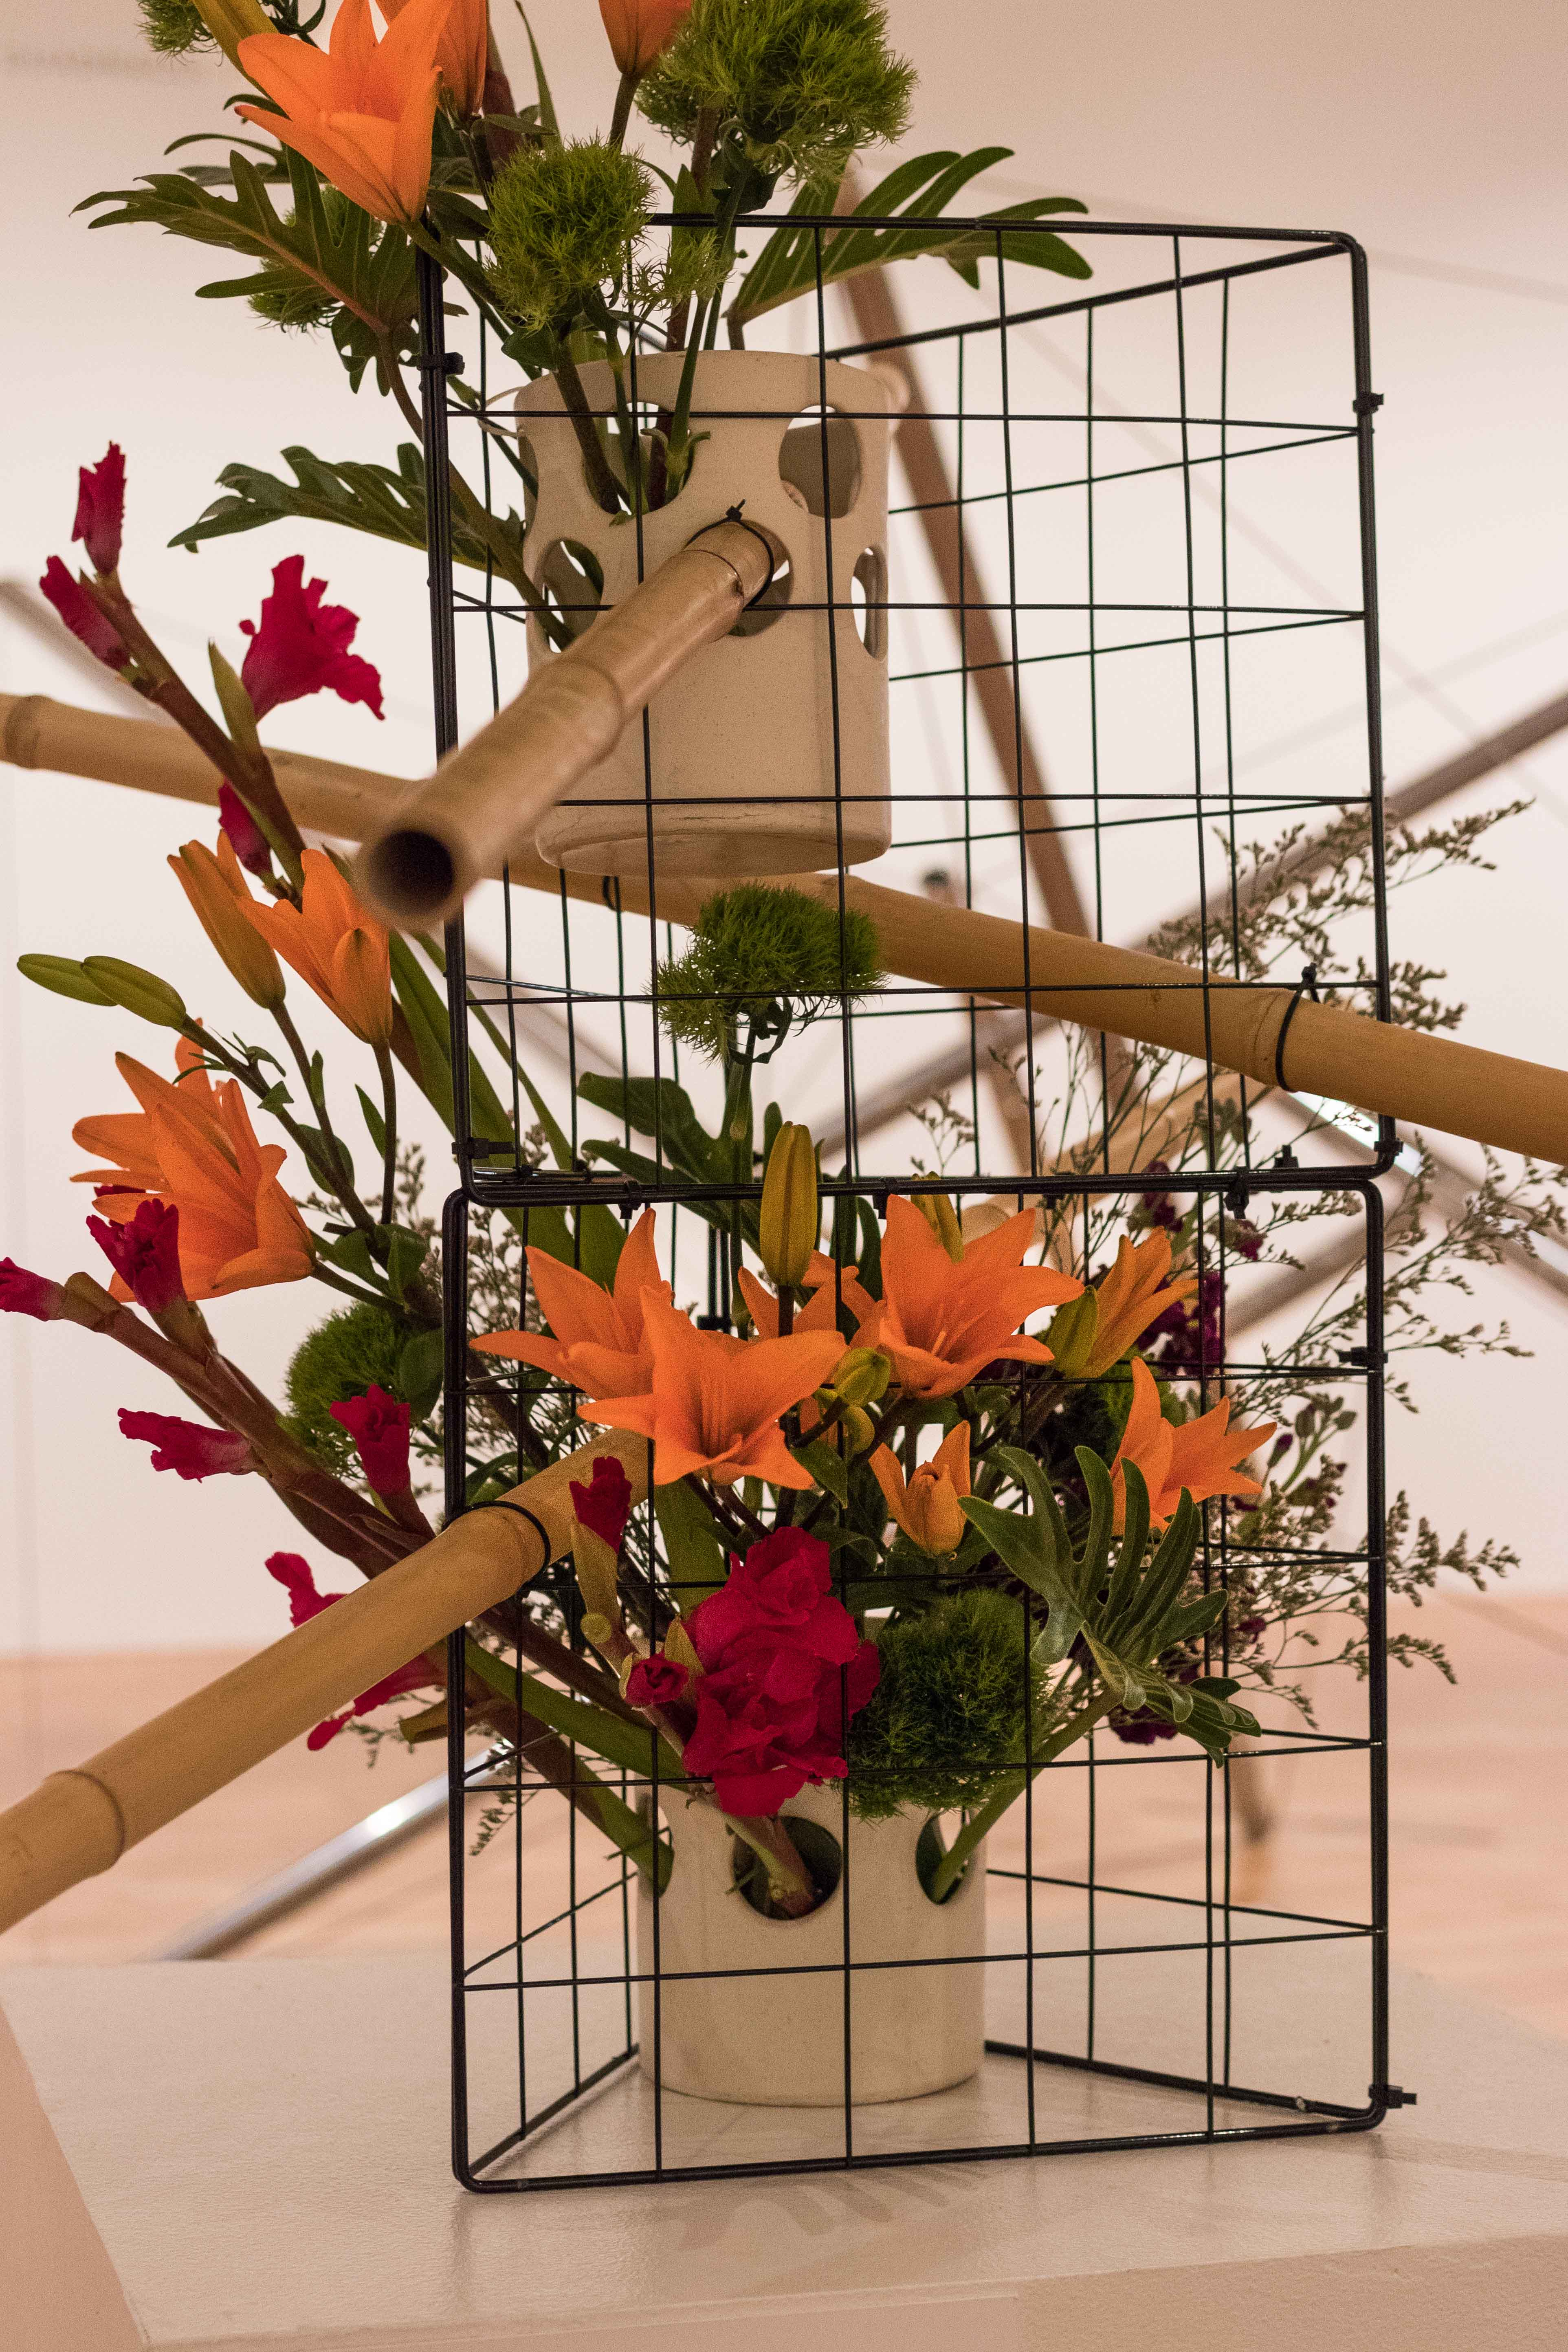 Art in Bloom 2018 at the Milwaukee Art Museum | http://www.roseclearfield.com